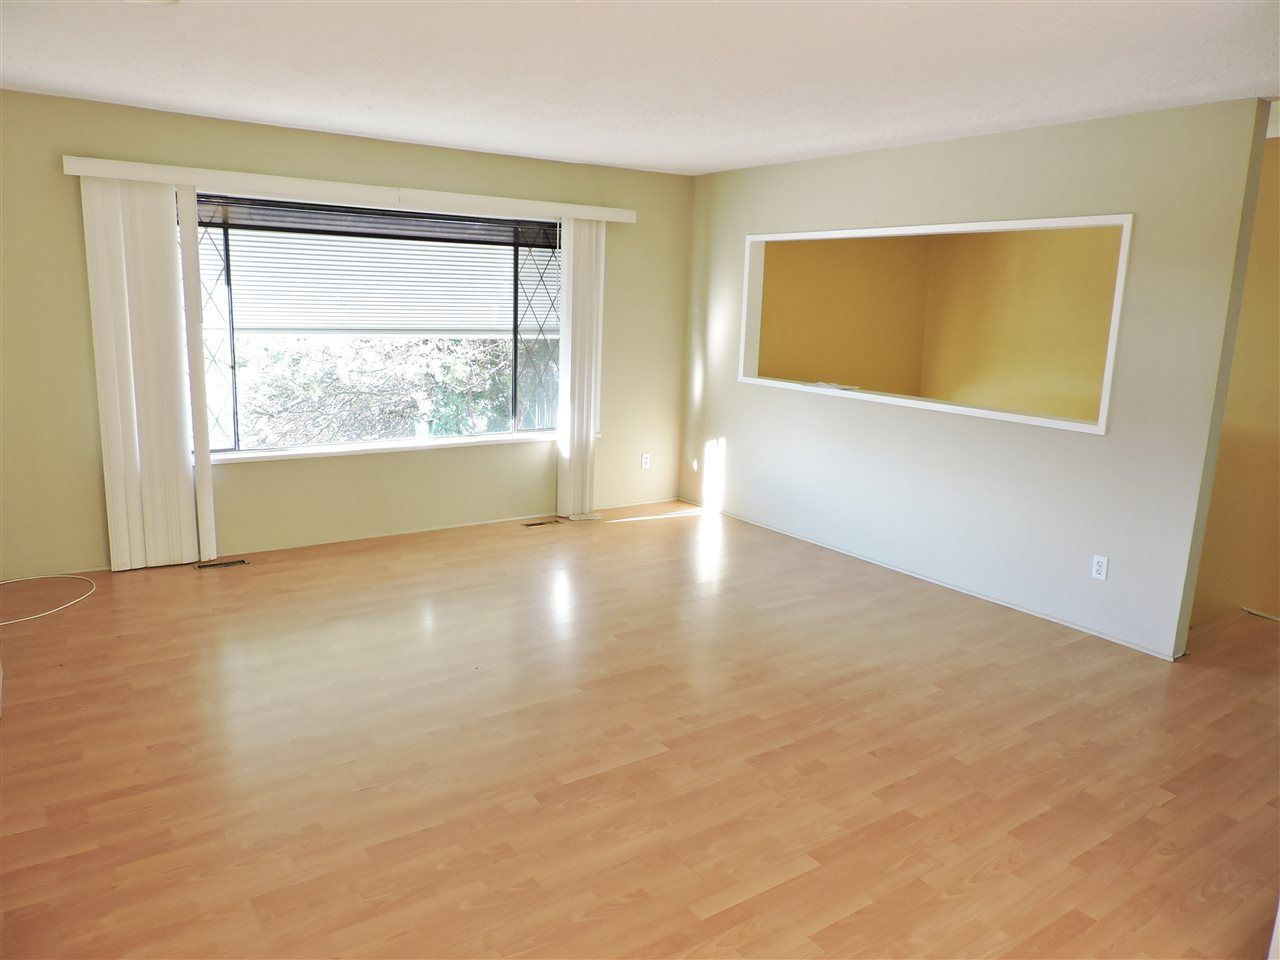 Photo 6: Photos: 7254 WREN STREET in Mission: Mission BC House for sale : MLS®# R2021052